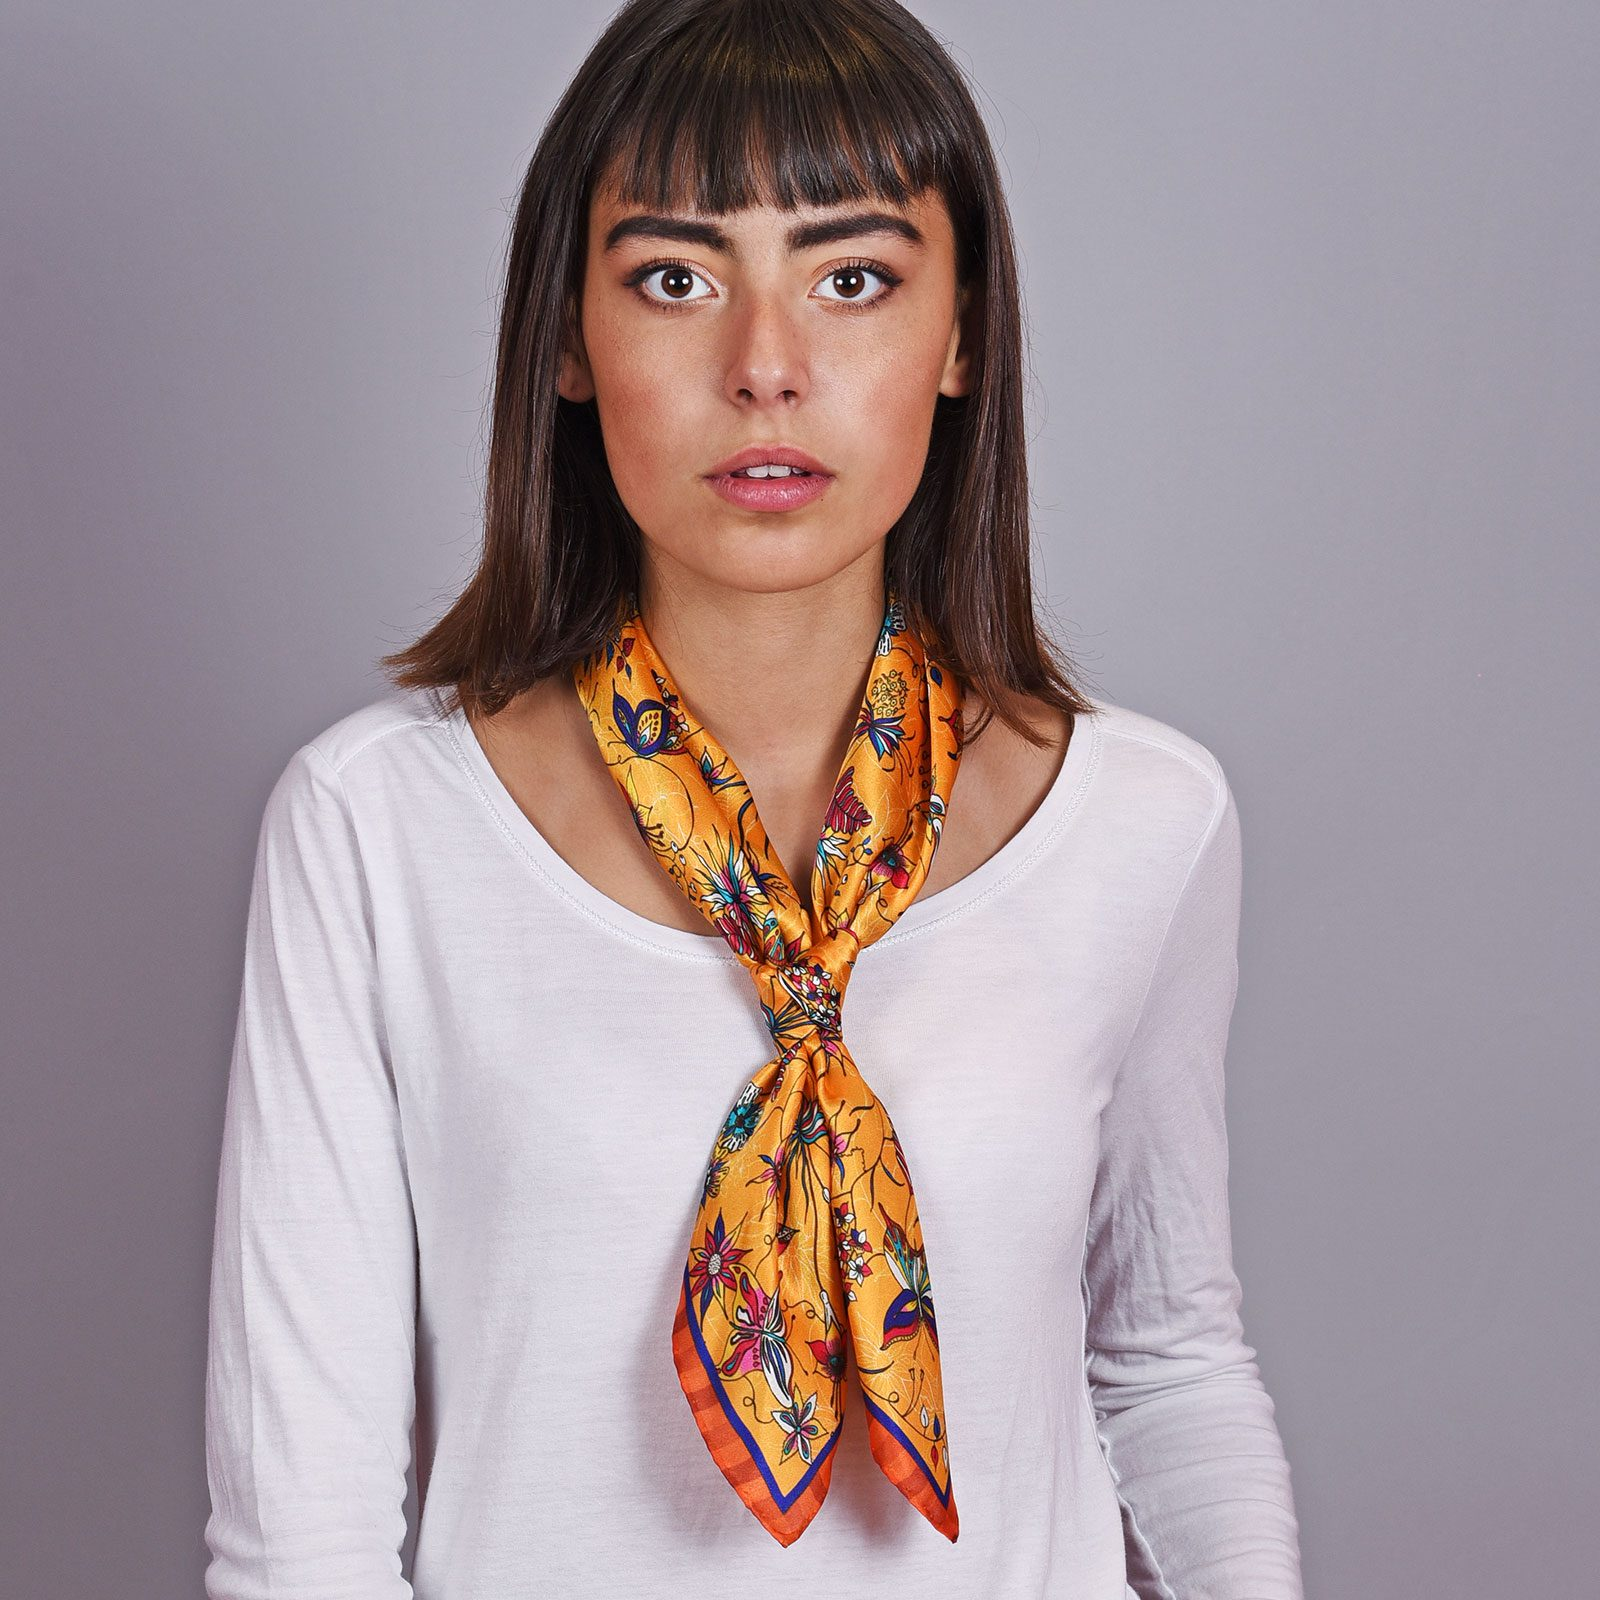 http://lookbook.allee-du-foulard.fr/wp-content/uploads/2018/11/AT-04603-VF16-2-carre-soie-jaune-orange-made-in-italie-1600x1600.jpg